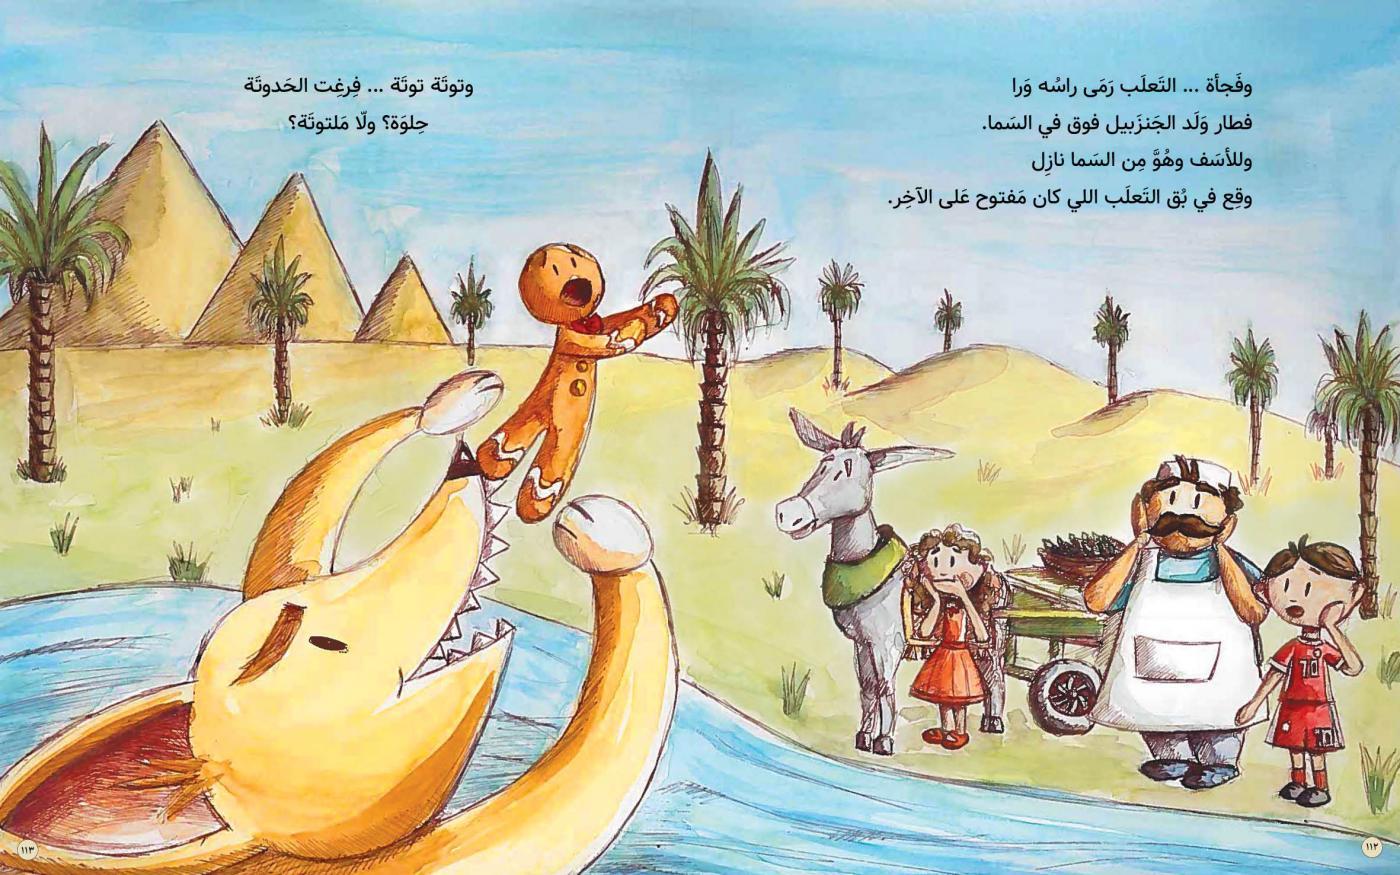 La version de Riham Shendy du Petit Bonhomme de pain d'épices se déroule au Caire (illustration d'Aia Sharawy)